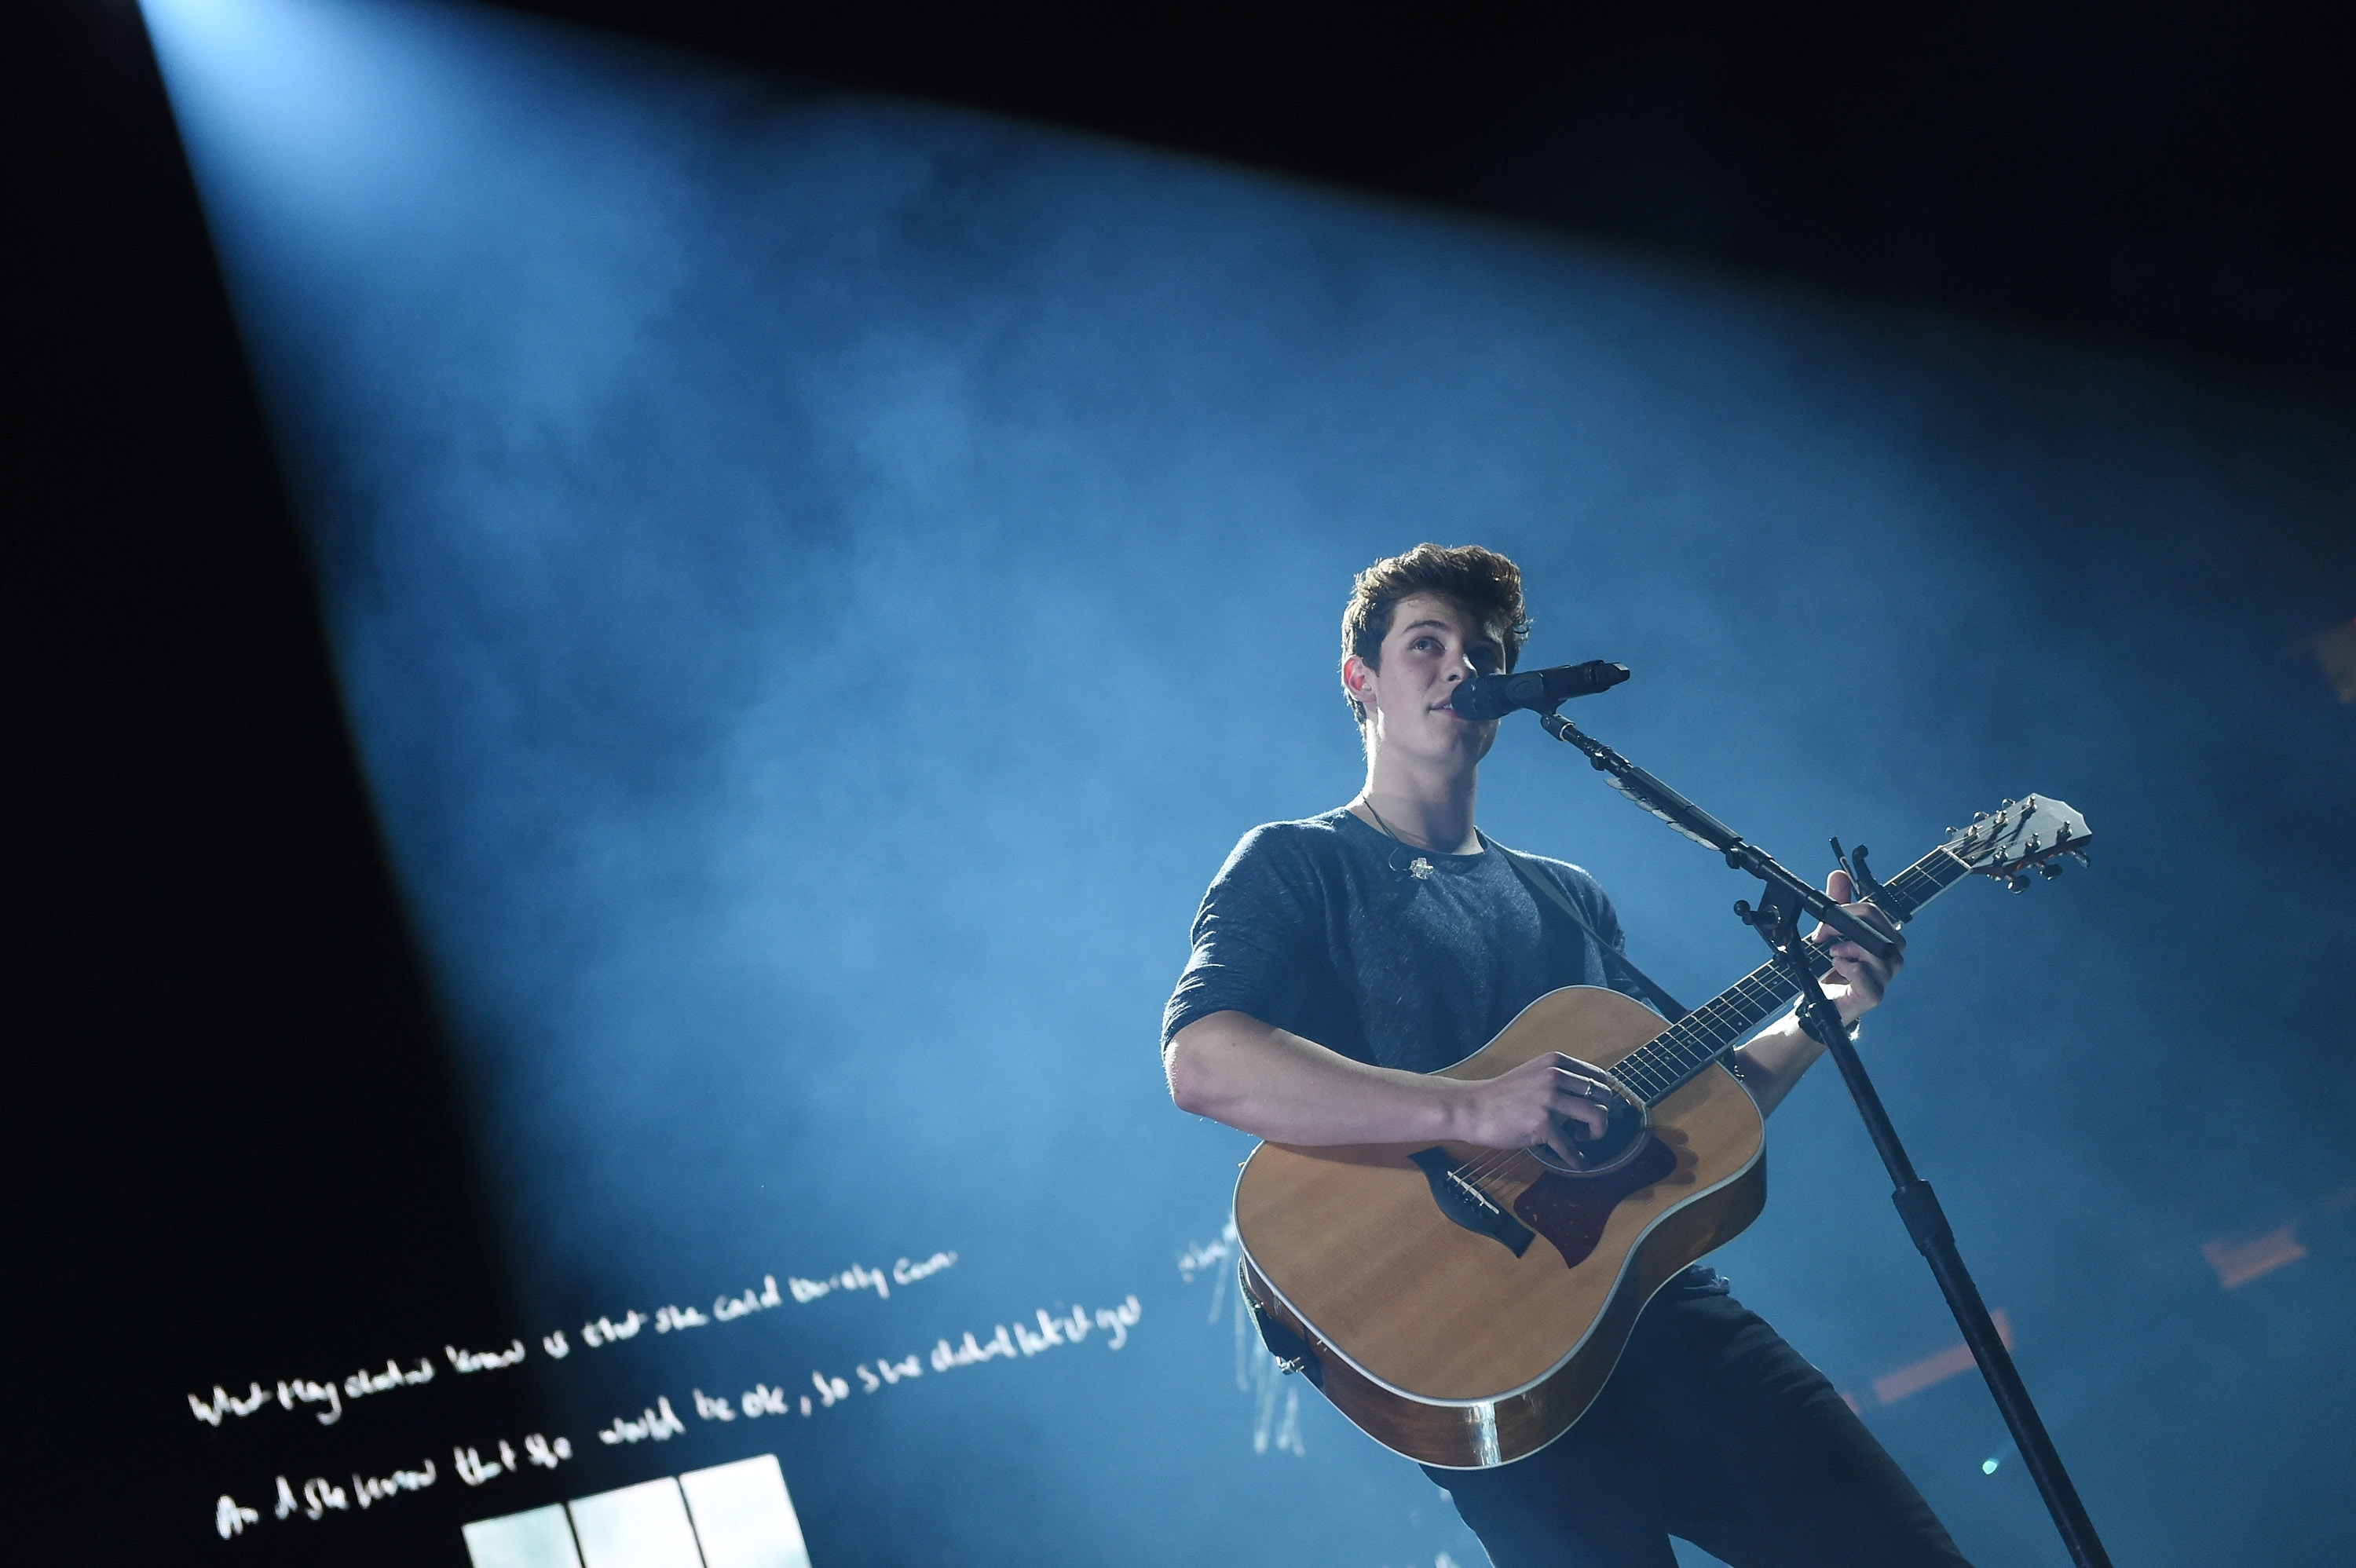 """Shawn Mendes performs before a sold-out Madison Square Garden on Sept. 10,introducing tunes from his new album """"Illuminate,"""" which was released last week."""